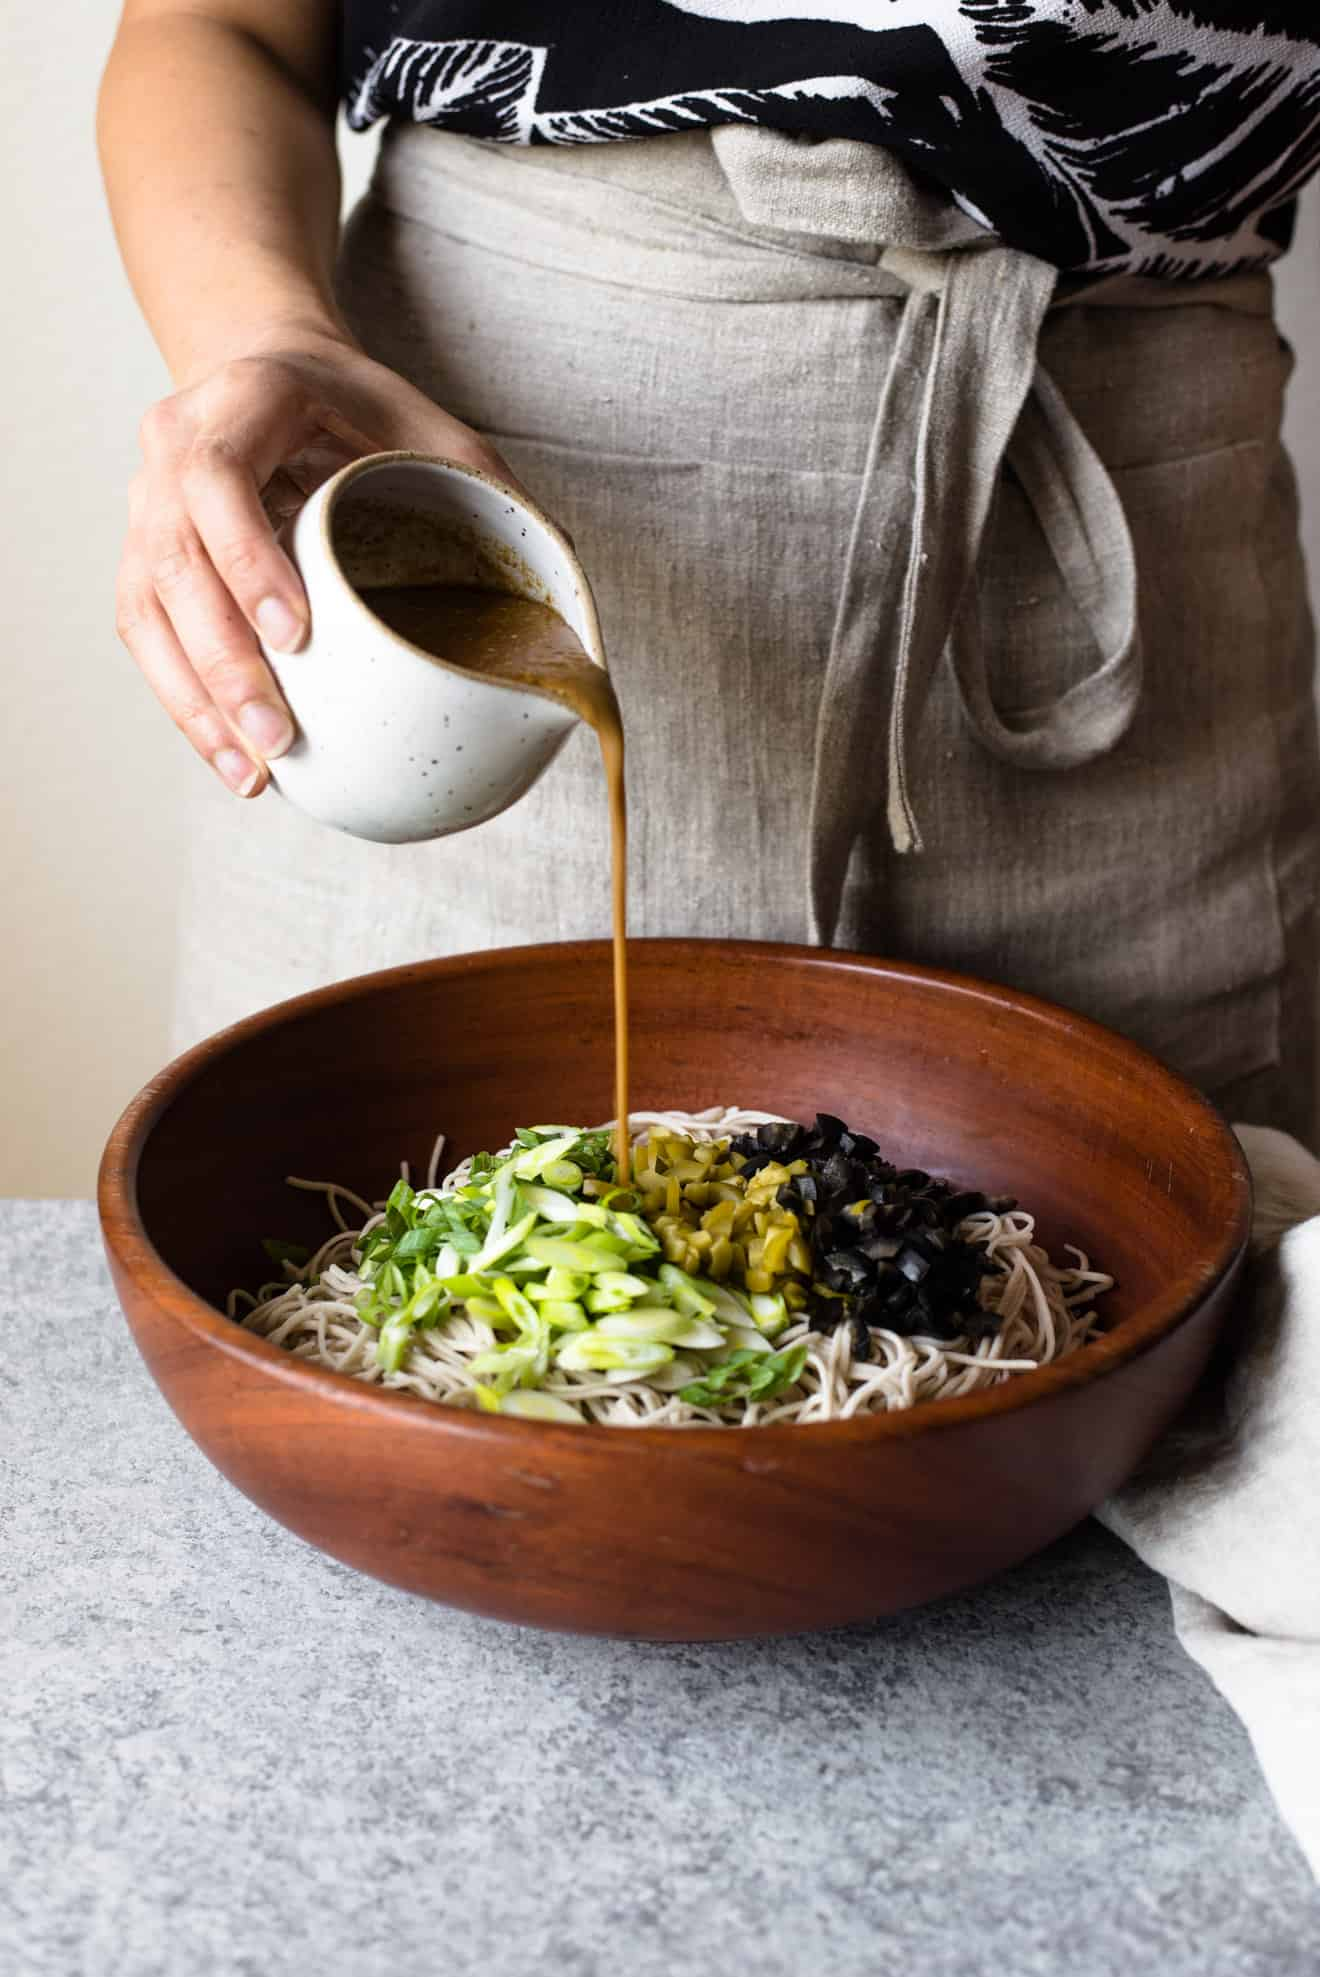 30-MINUTE Sesame and Olive Soba Noodles - Soba noodles are tossed with a sesame and olive sauce - easy, healthy vegan meal!